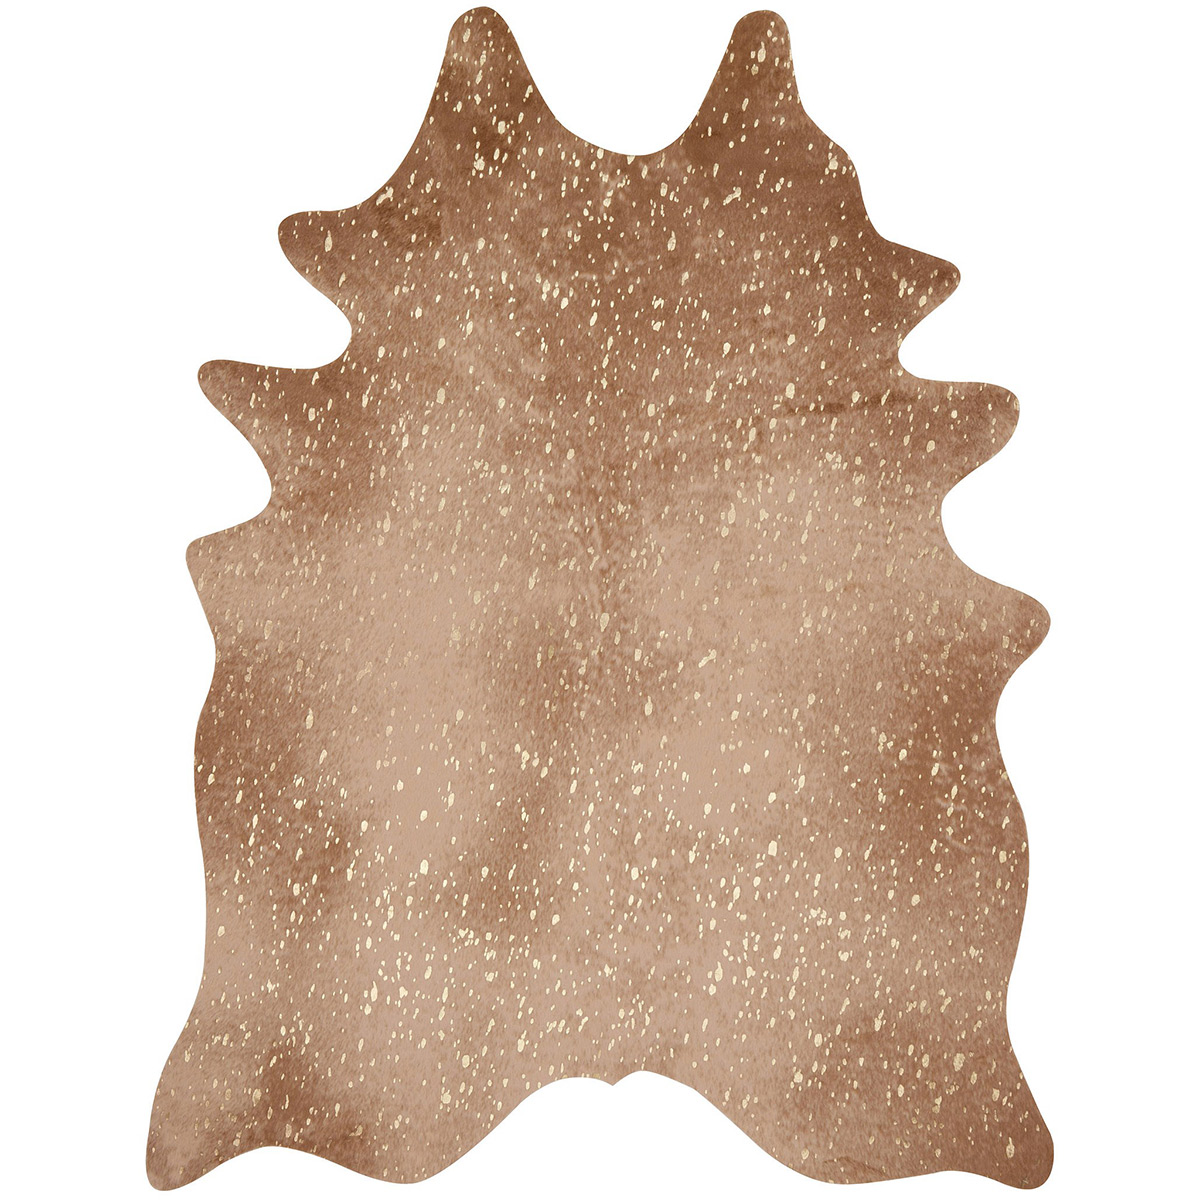 Golden Sand Faux Cowhide Rug - 4 x 5